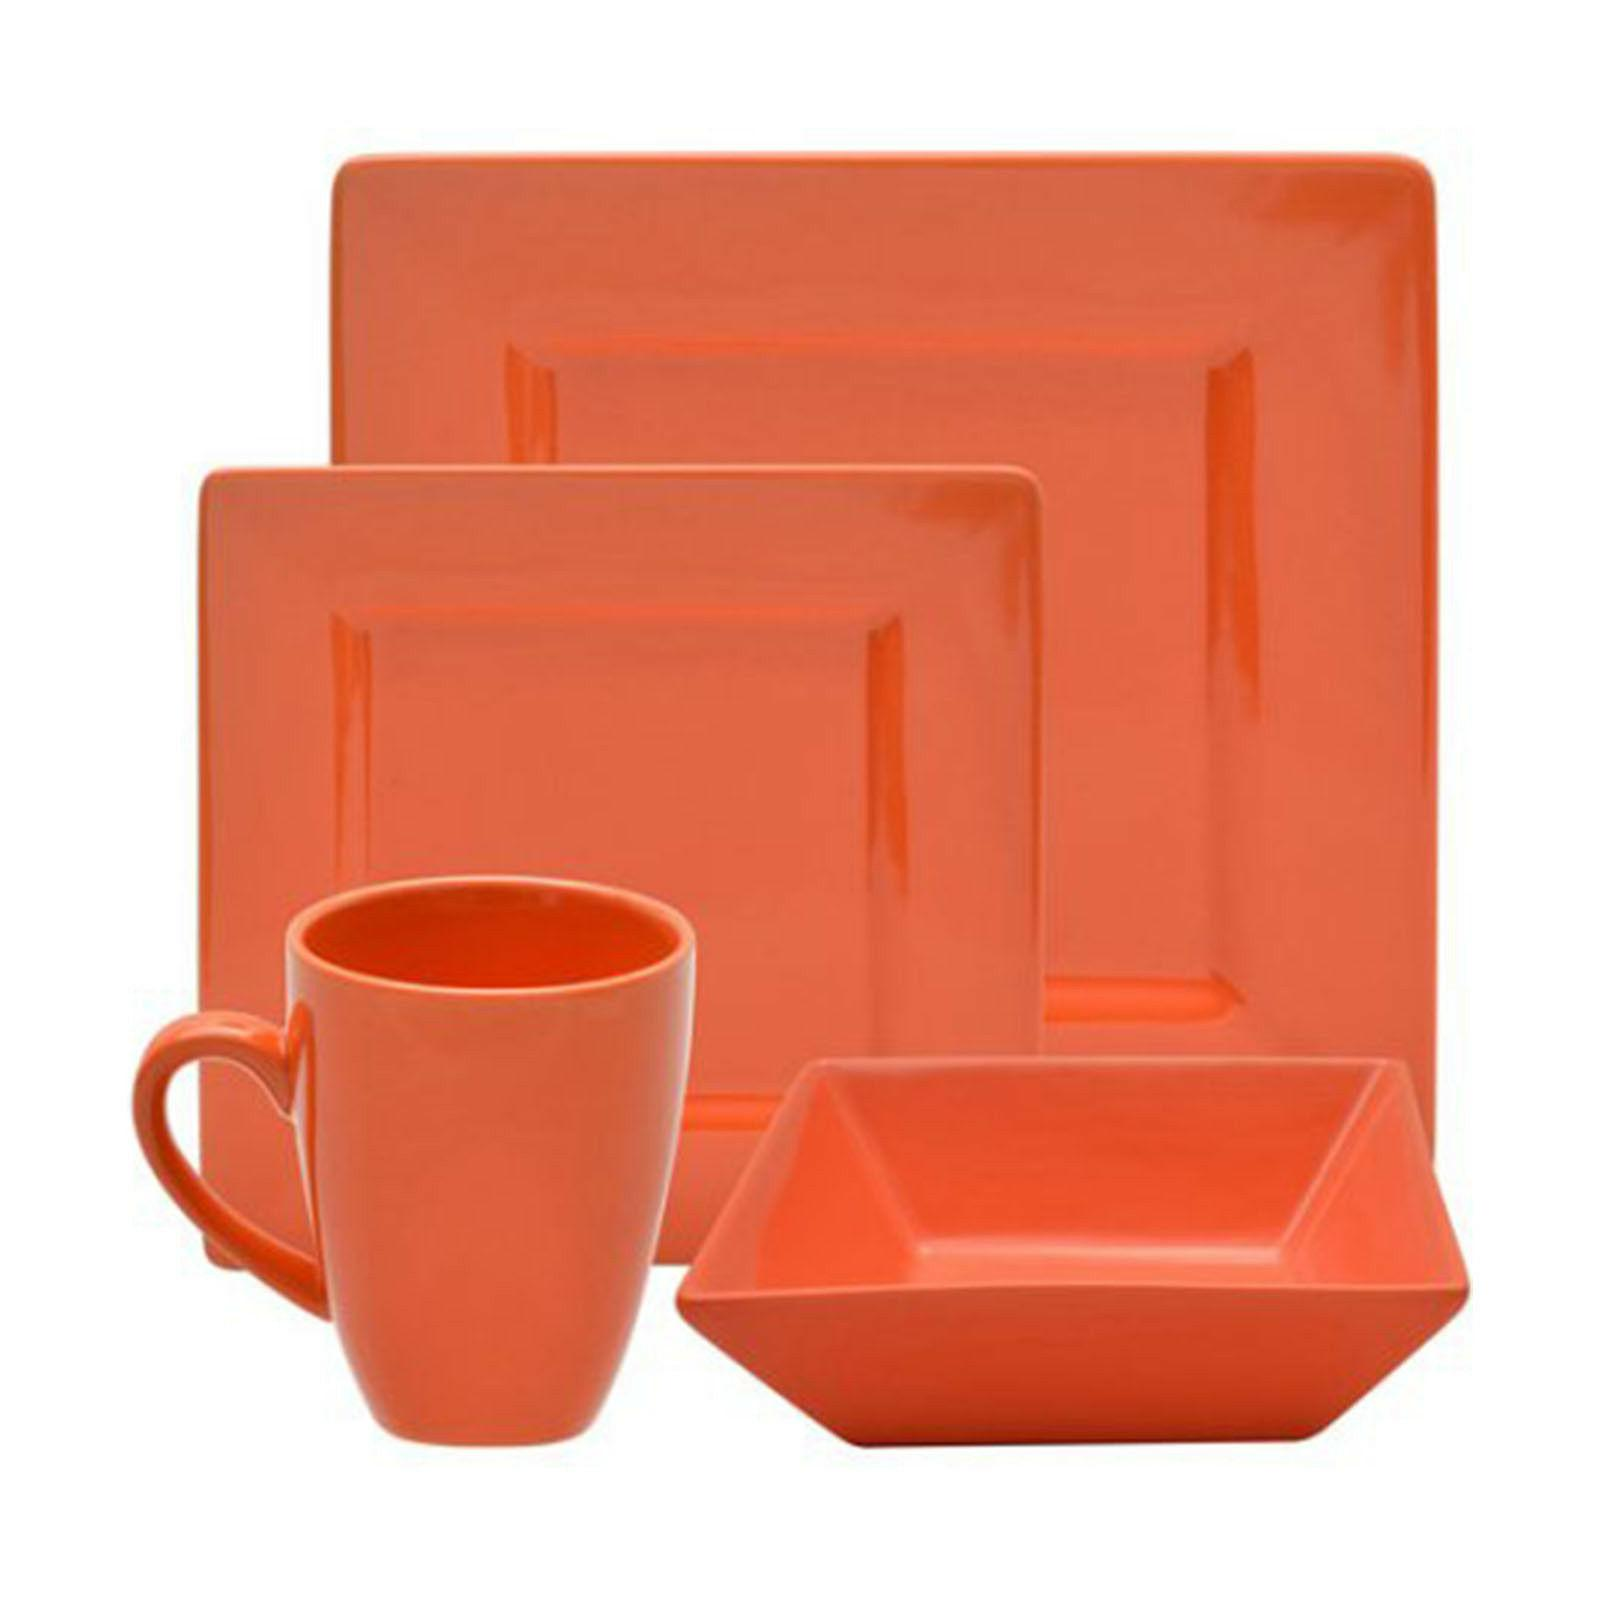 Dinnerware Set Square 16-Piece Dishes Bowls